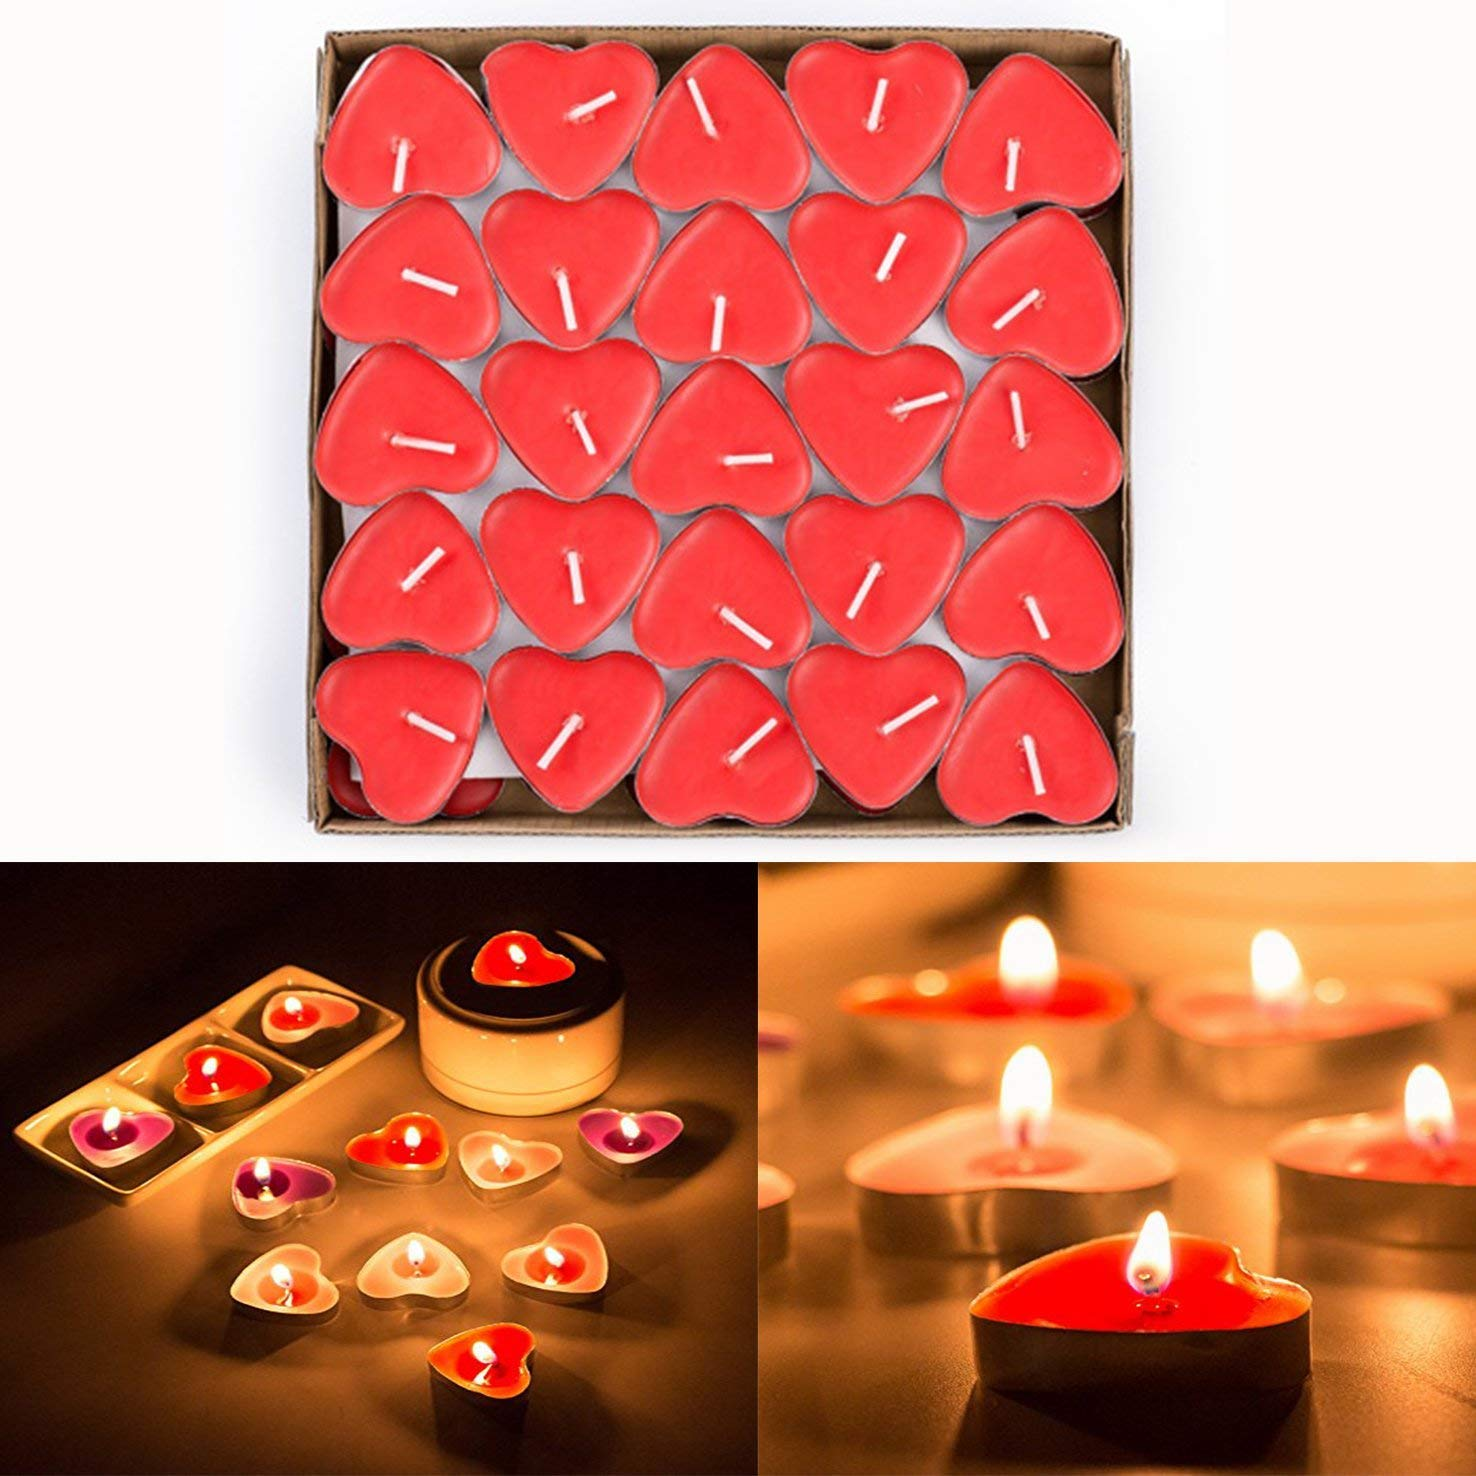 Tea Light Candles for Birthday Valentines Day Red Proposal Smokeless Tealights Candle Wedding Party JCY-US 50pcs Heart Shaped Candles Red Wedding Engagement